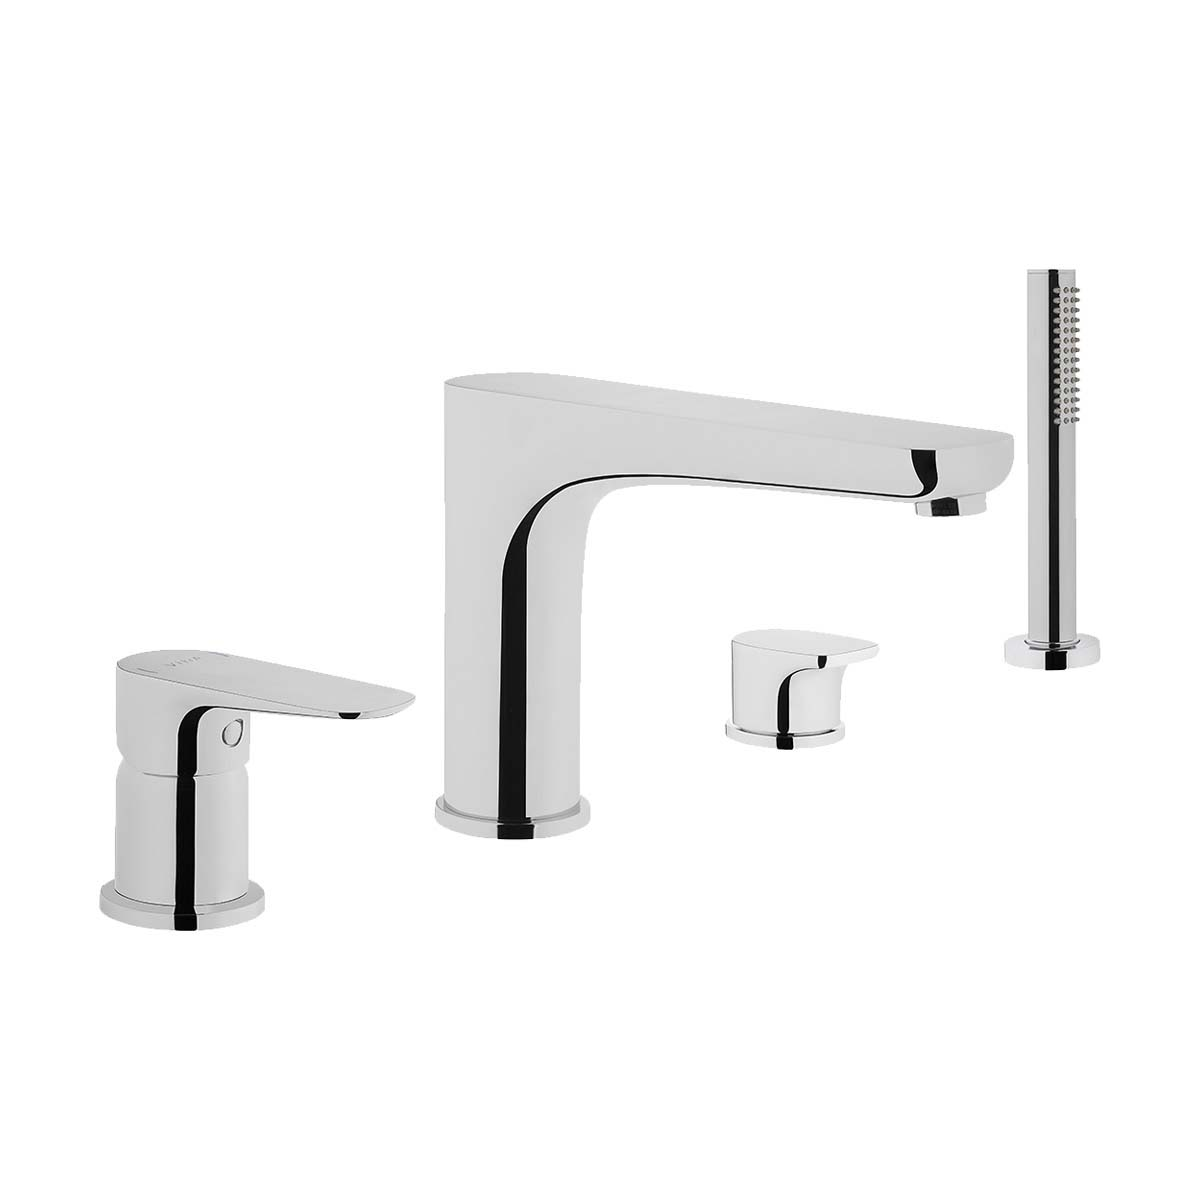 Bath mixer (for 4-hole bathtubs-deck mounted with handshower)